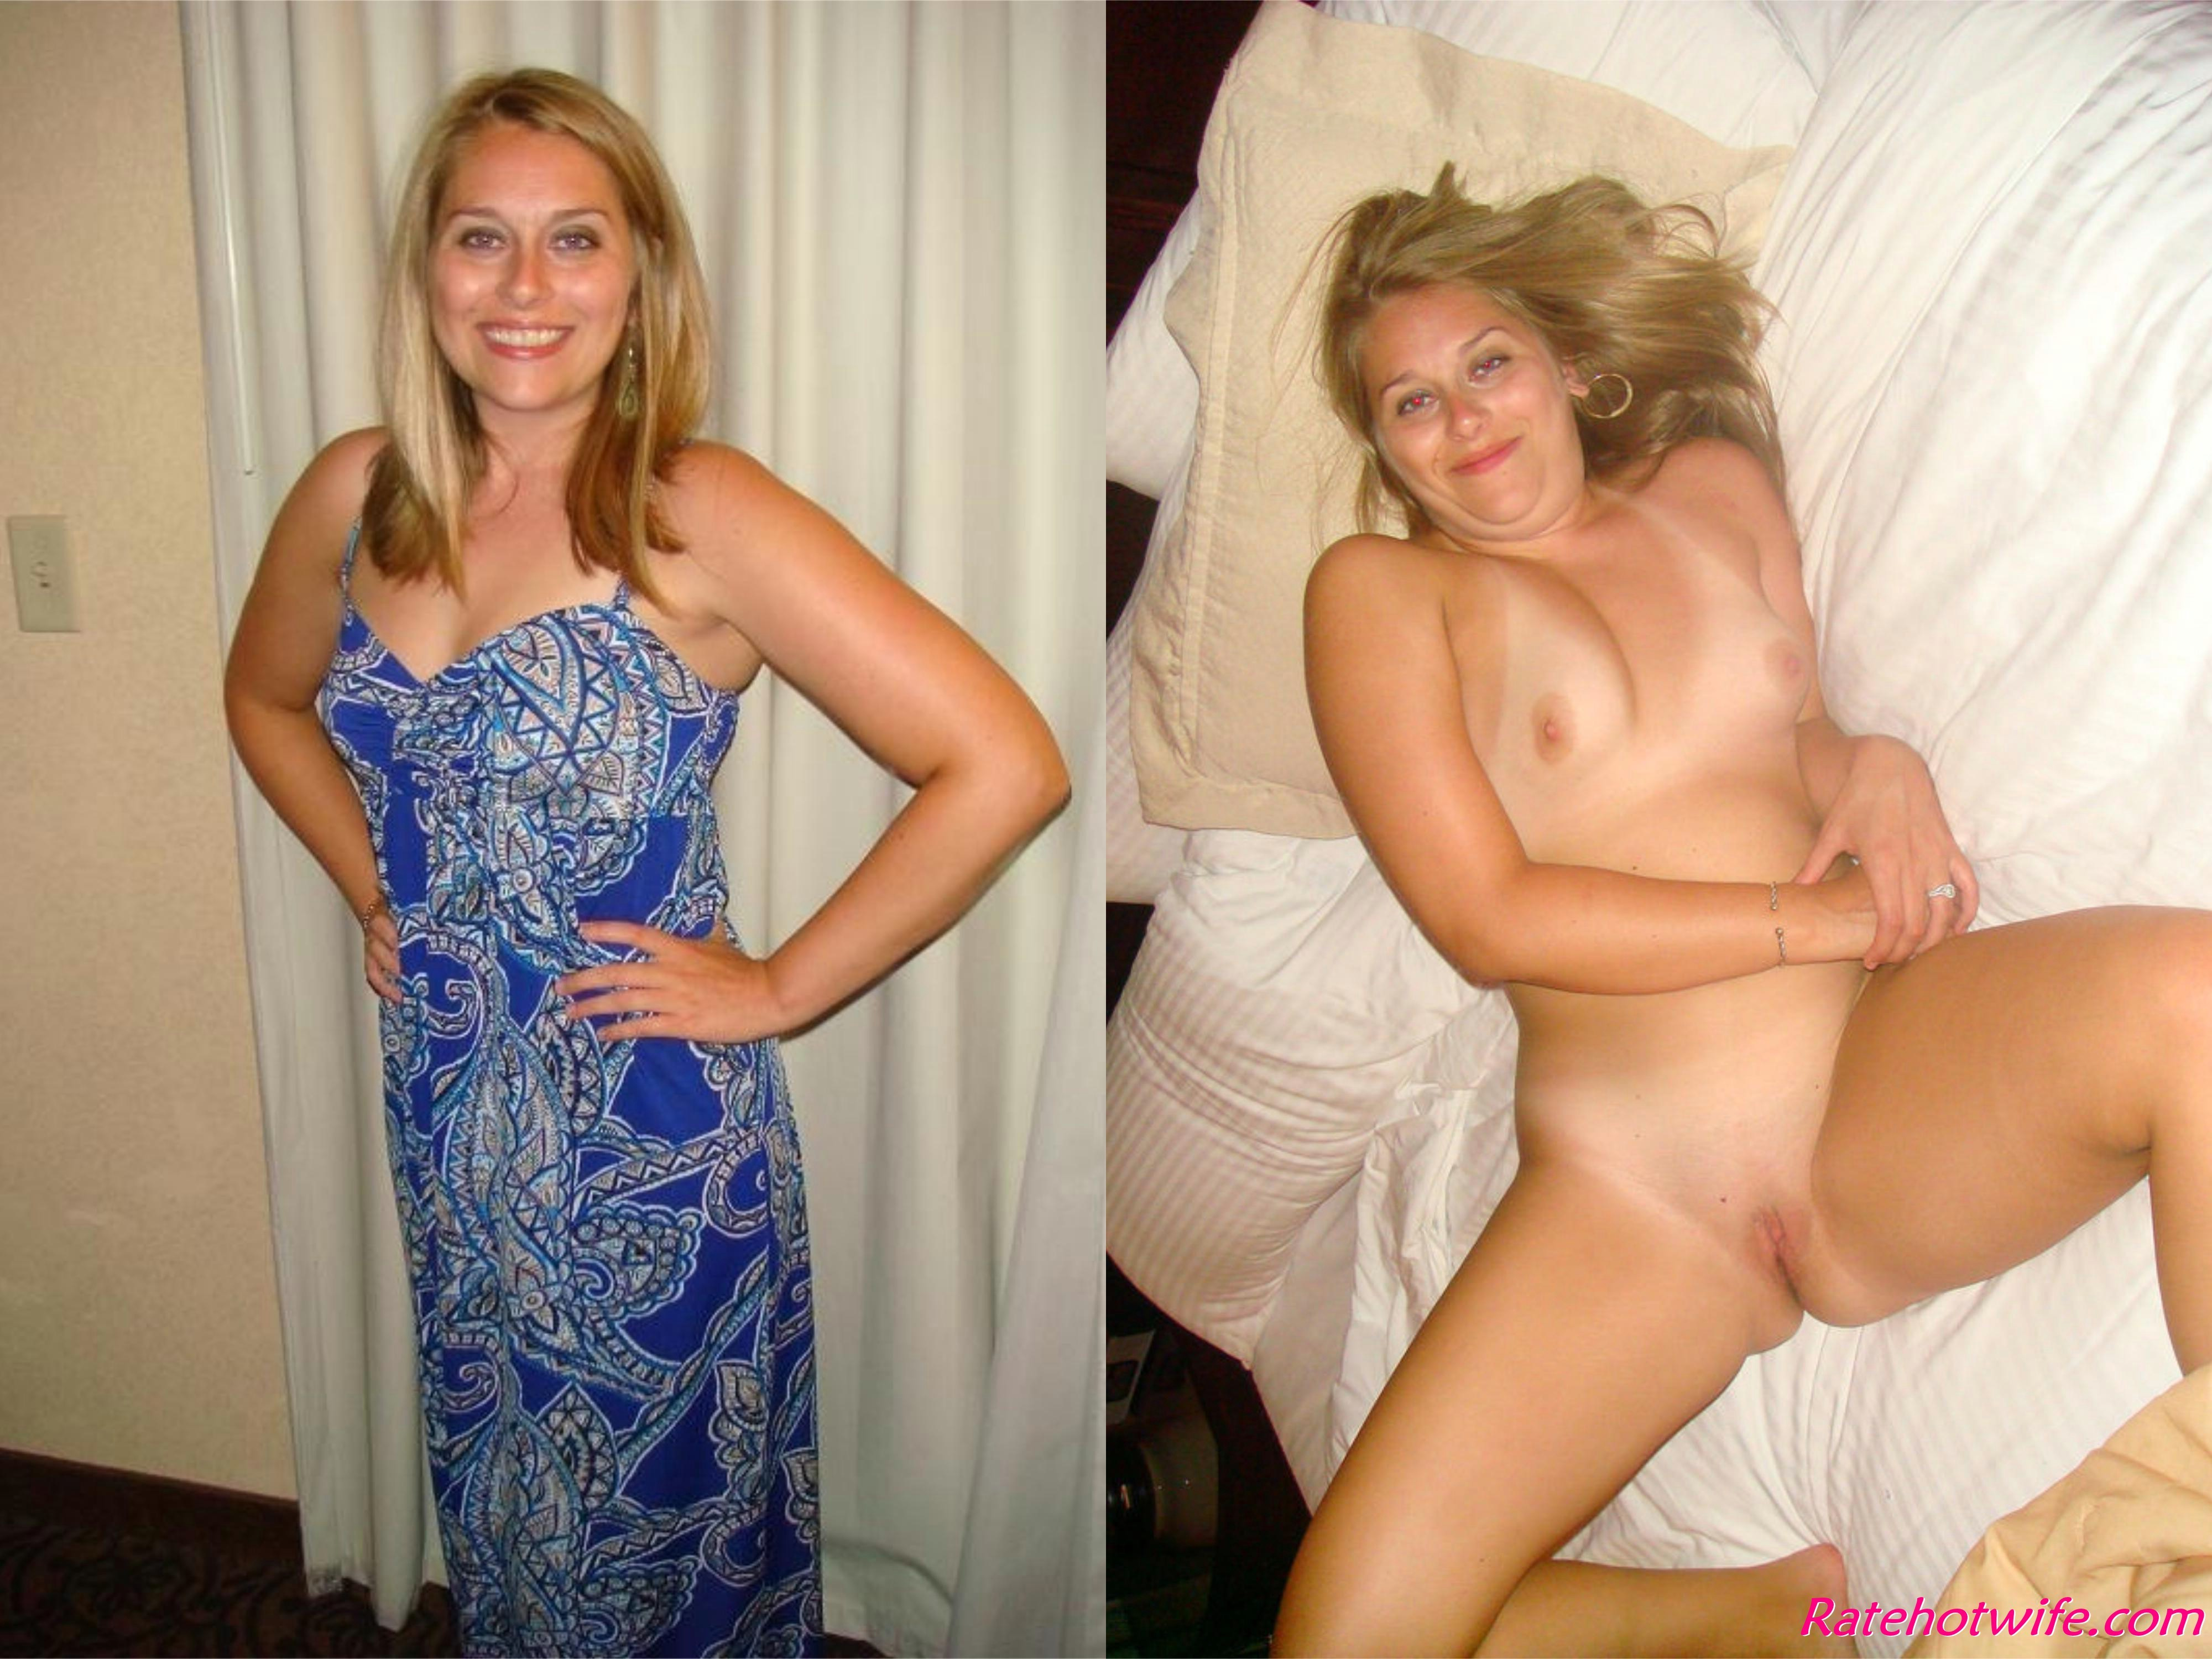 Nude before and after weight loss pics 4